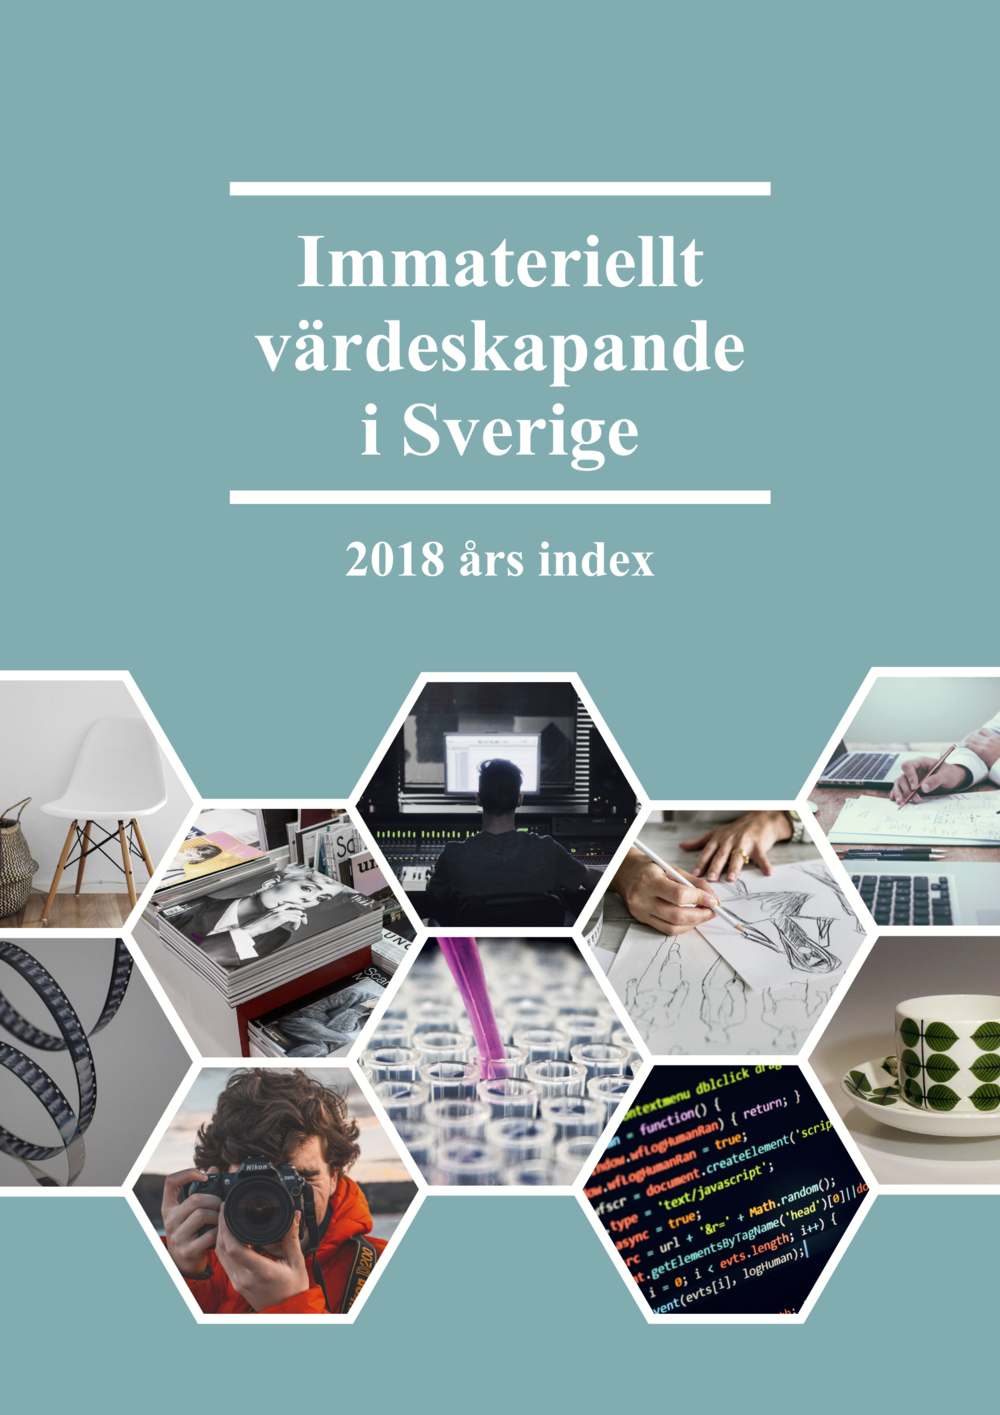 24.01.2019_Immateriellt-värdeskapande-final (dragged).png